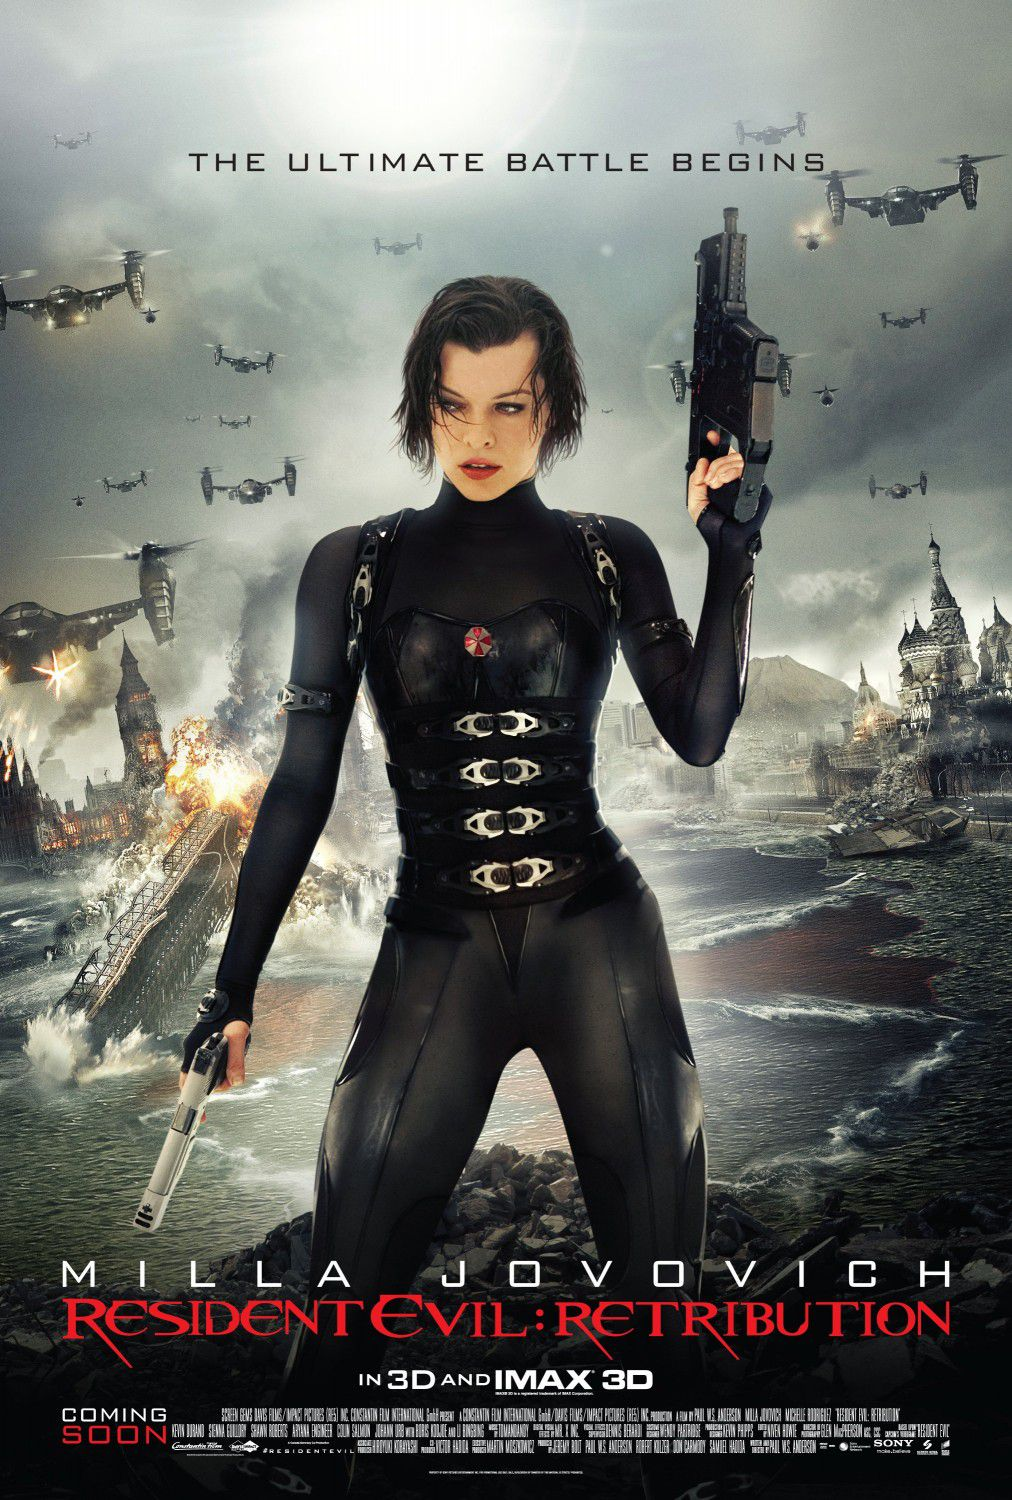 Milla Jovovich is Alice